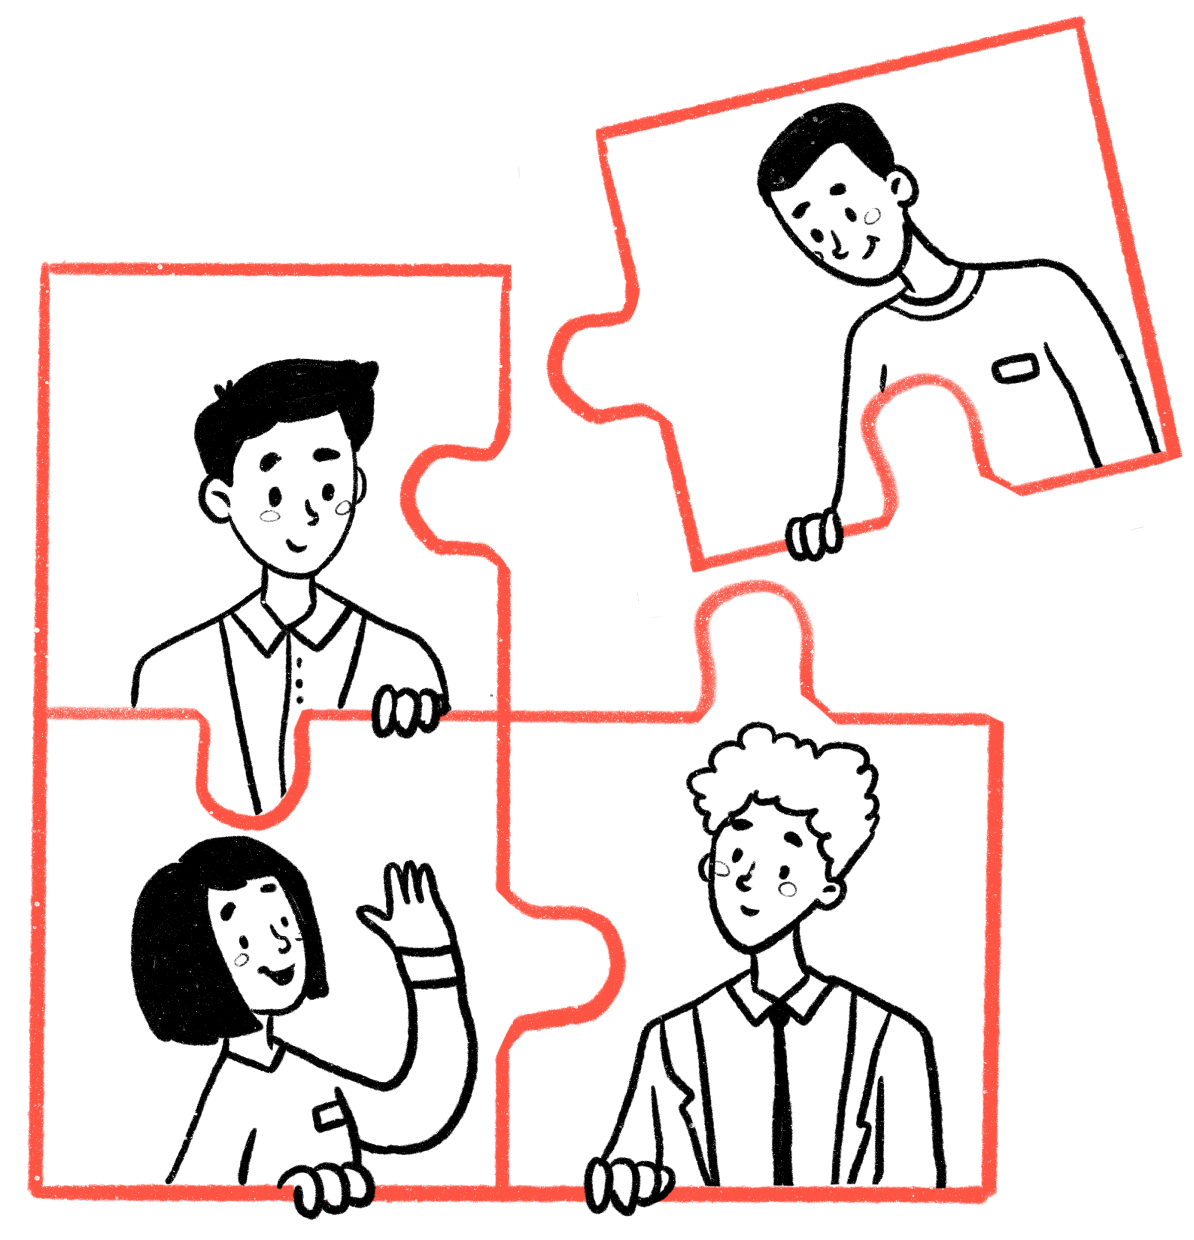 Illustration with puzzle